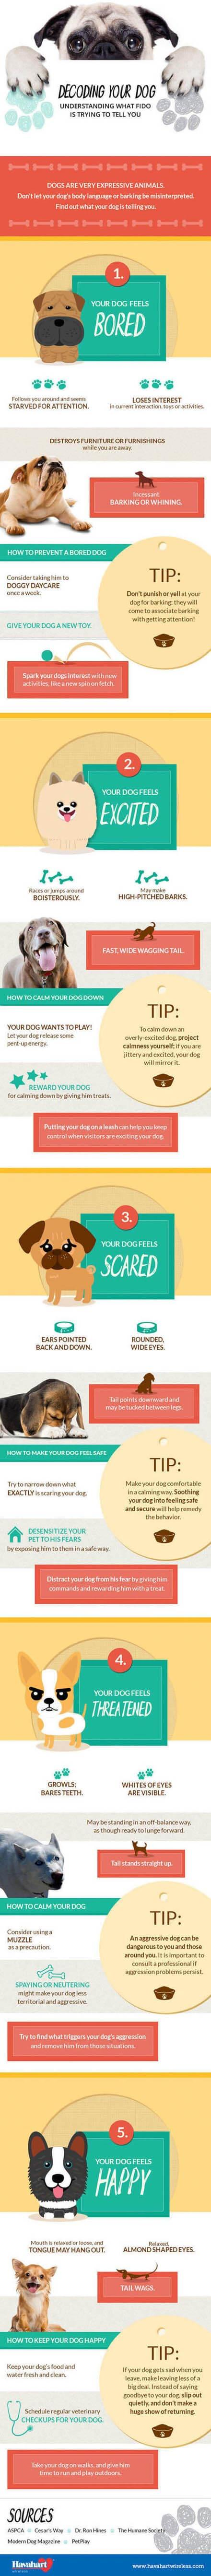 DOG BODY LANGUAGE INFOGRAM, INFOGRAPHICS - BY Rebecca OConnell - CLICK TO SEE IN FULL SIZE !